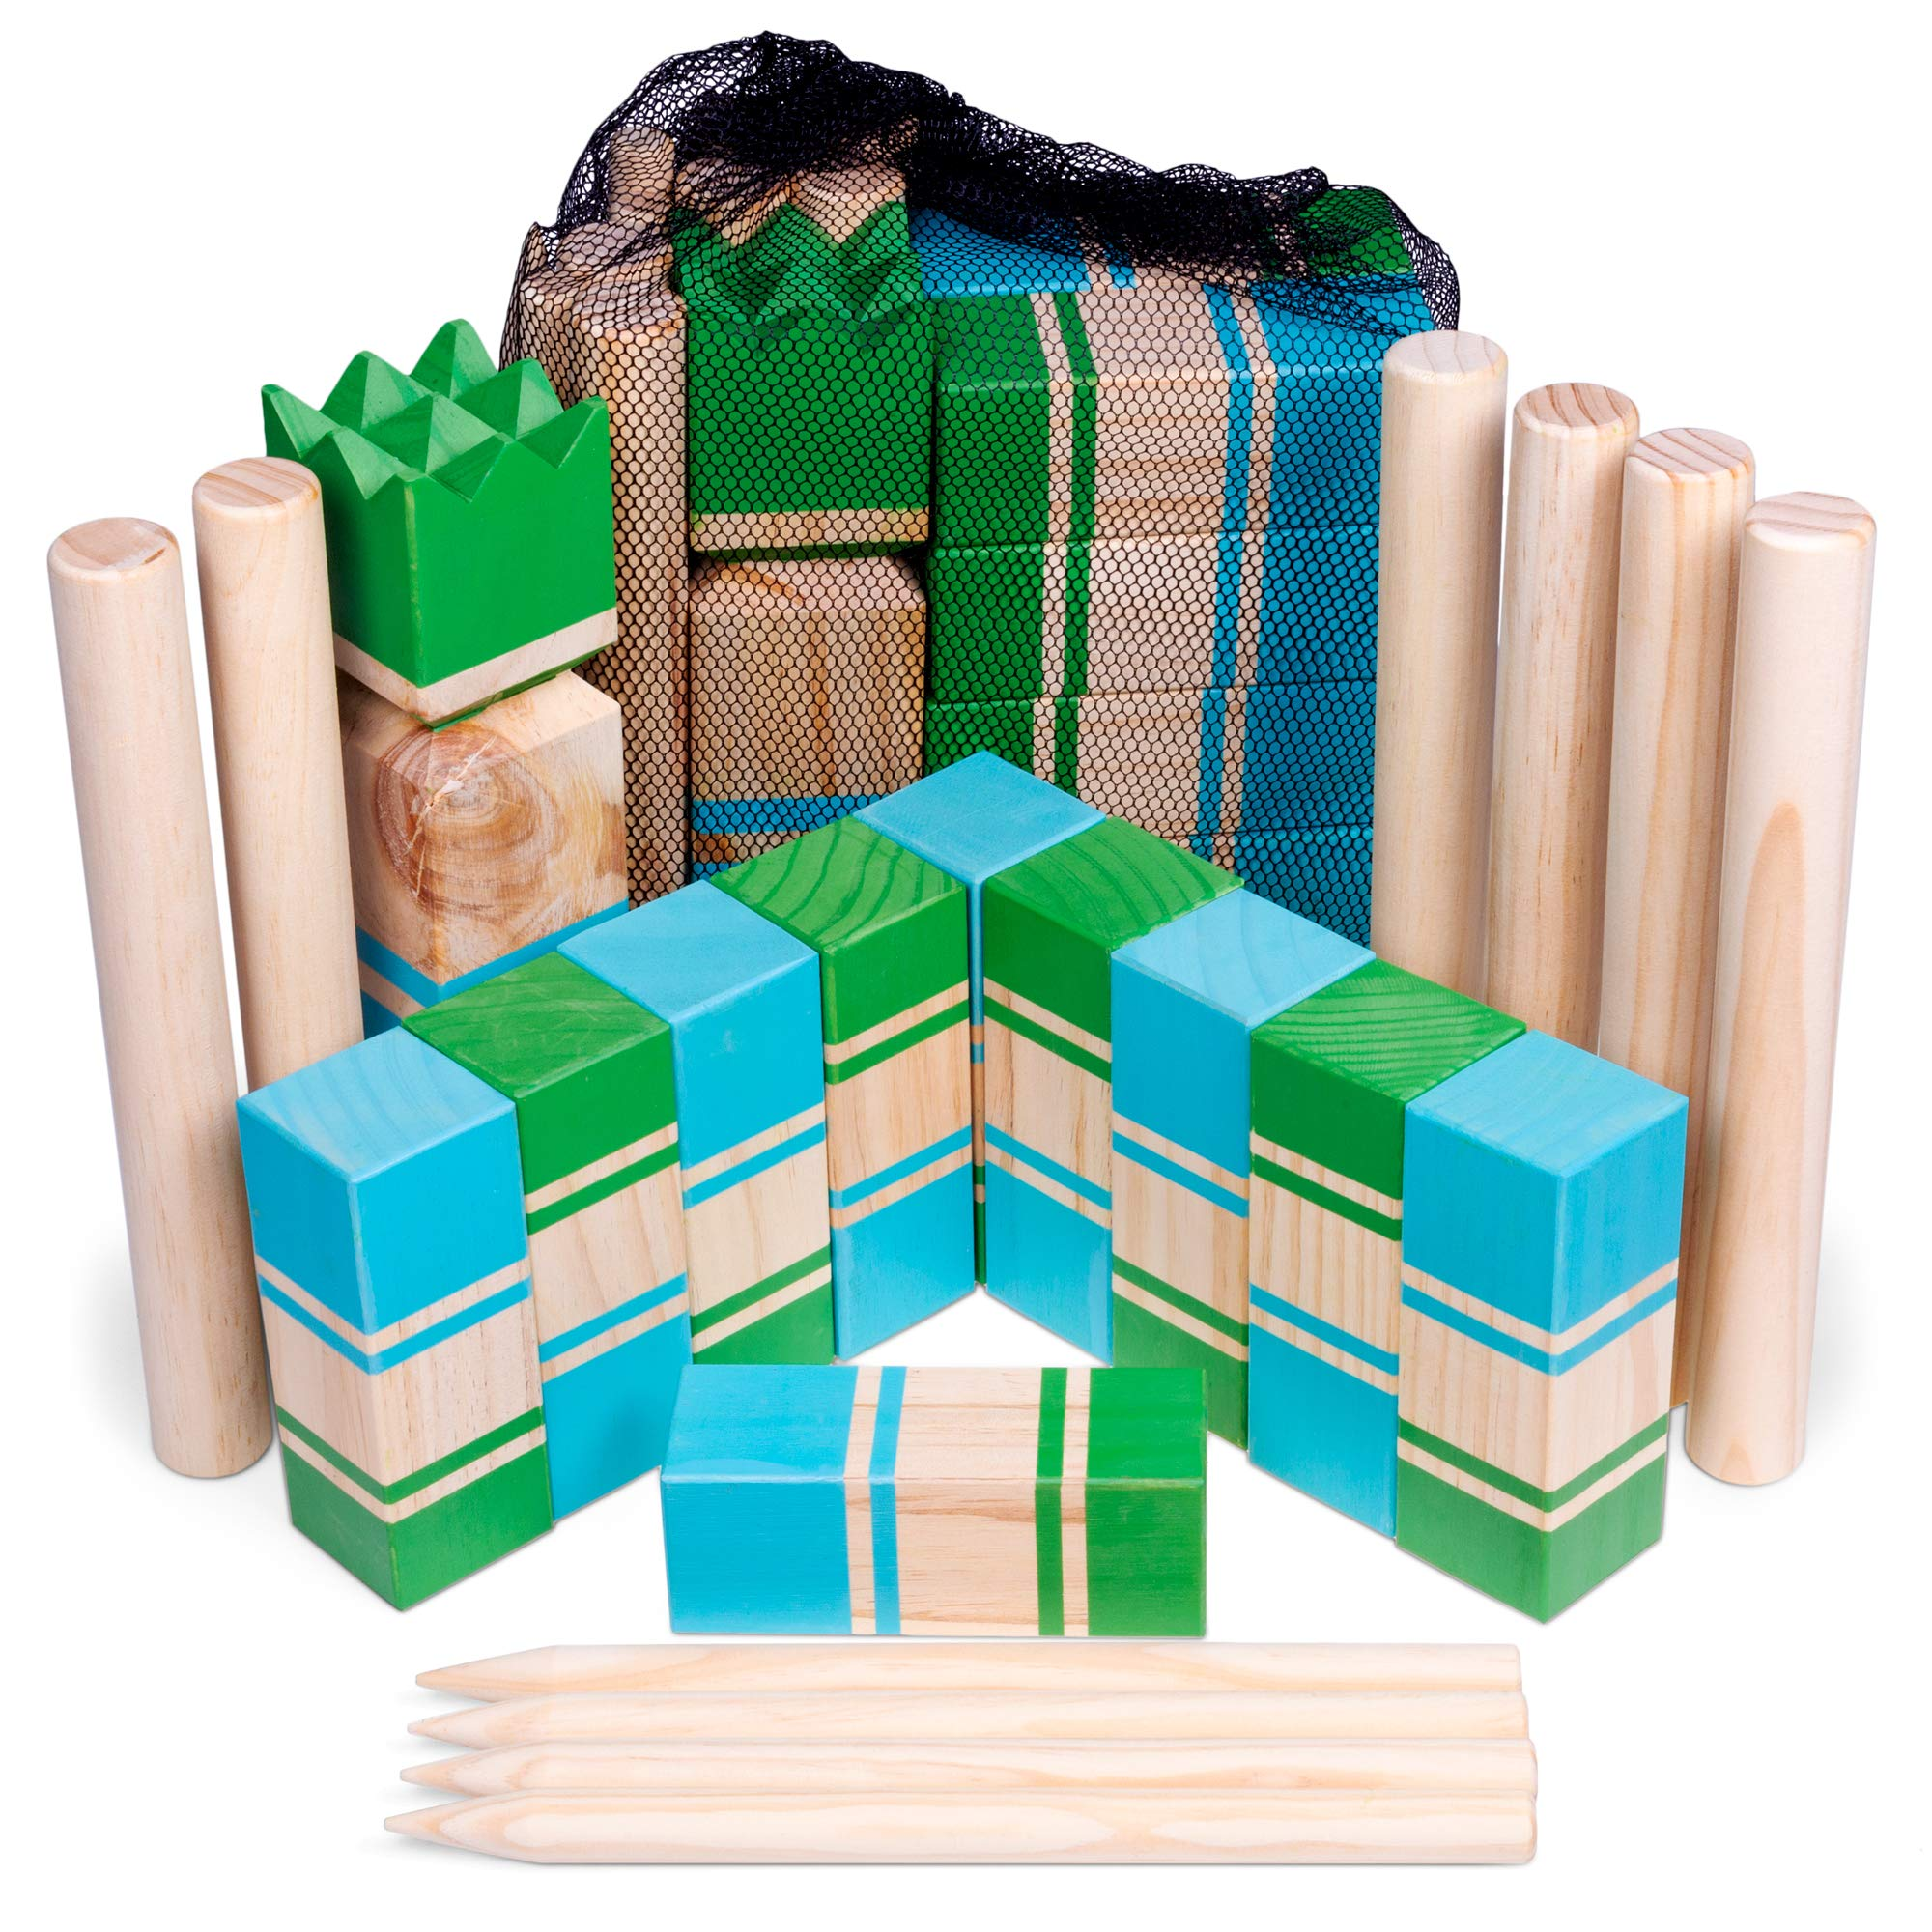 Kubb | Portable Viking Lawn Game for Adults and Kids | Unique, Traditional Family Game | Premium Wooden Tossing Game Set for Outdoor Parties, Cookouts, Yard Activities | Includes Free Mesh Carry Bag by Brybelly